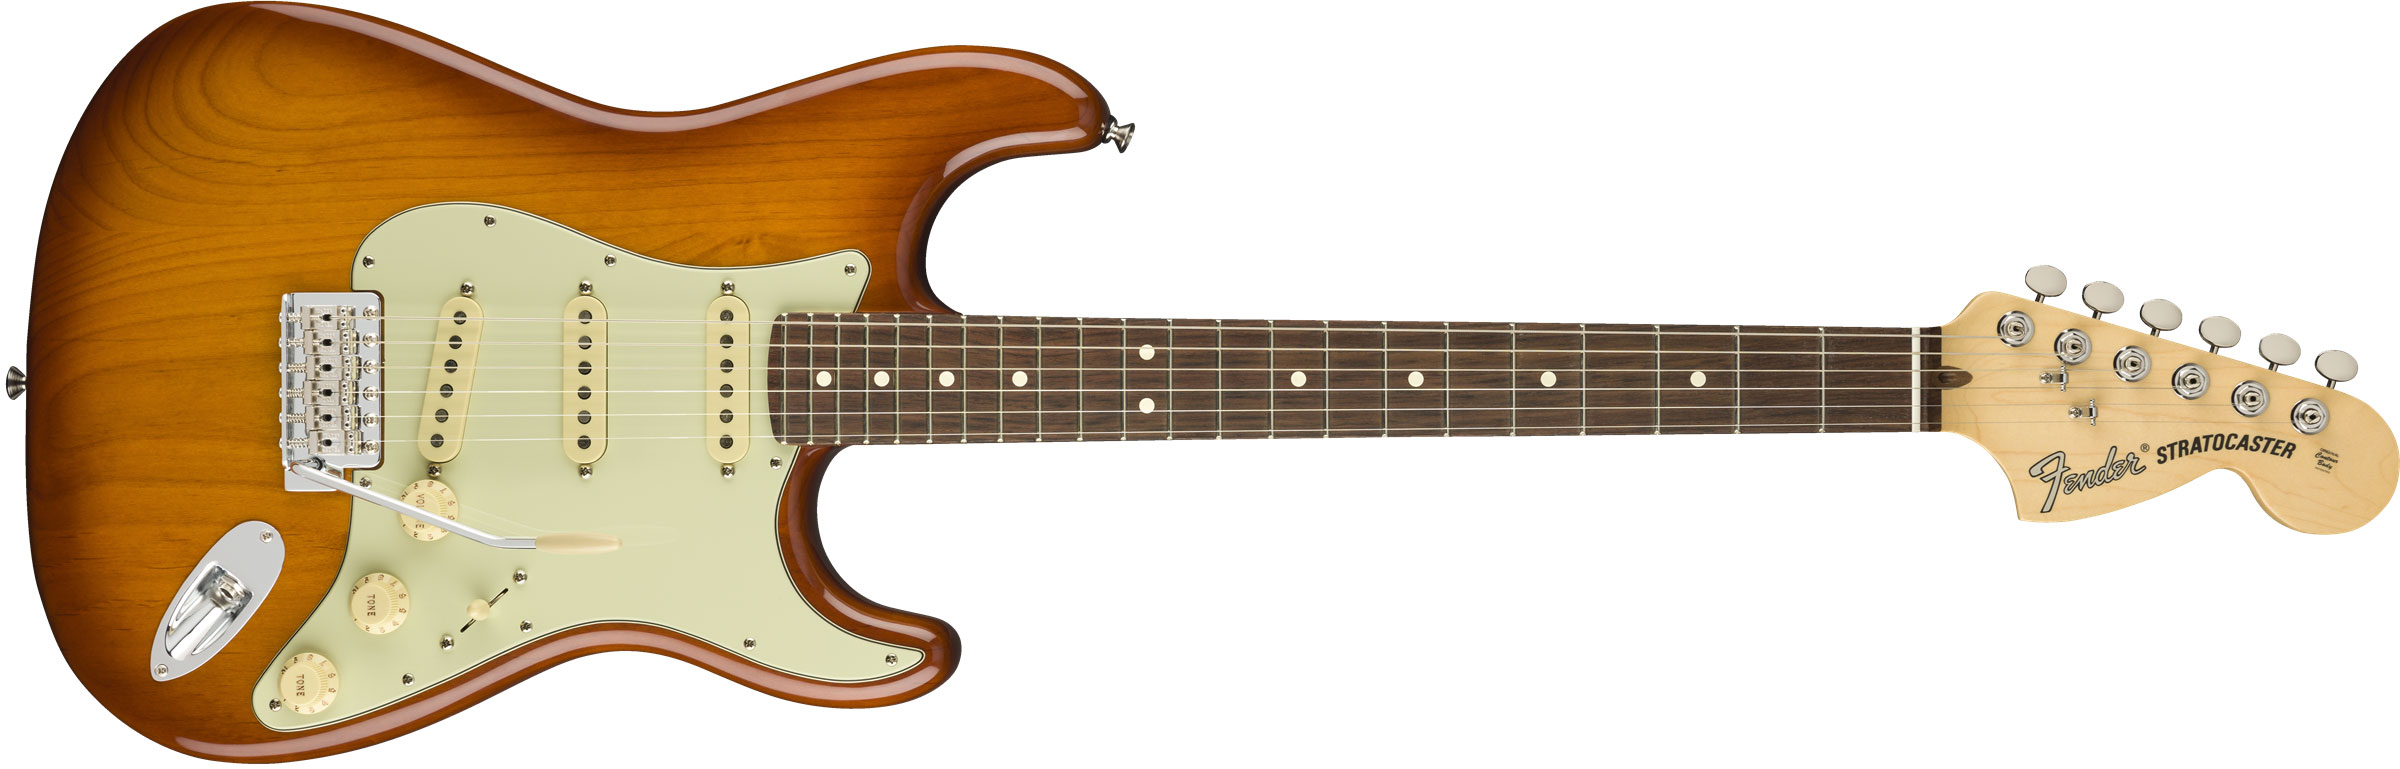 GUITARRA FENDER AM PERFORMER STRATOCASTER RW 011-4910-342 HONEY BURST